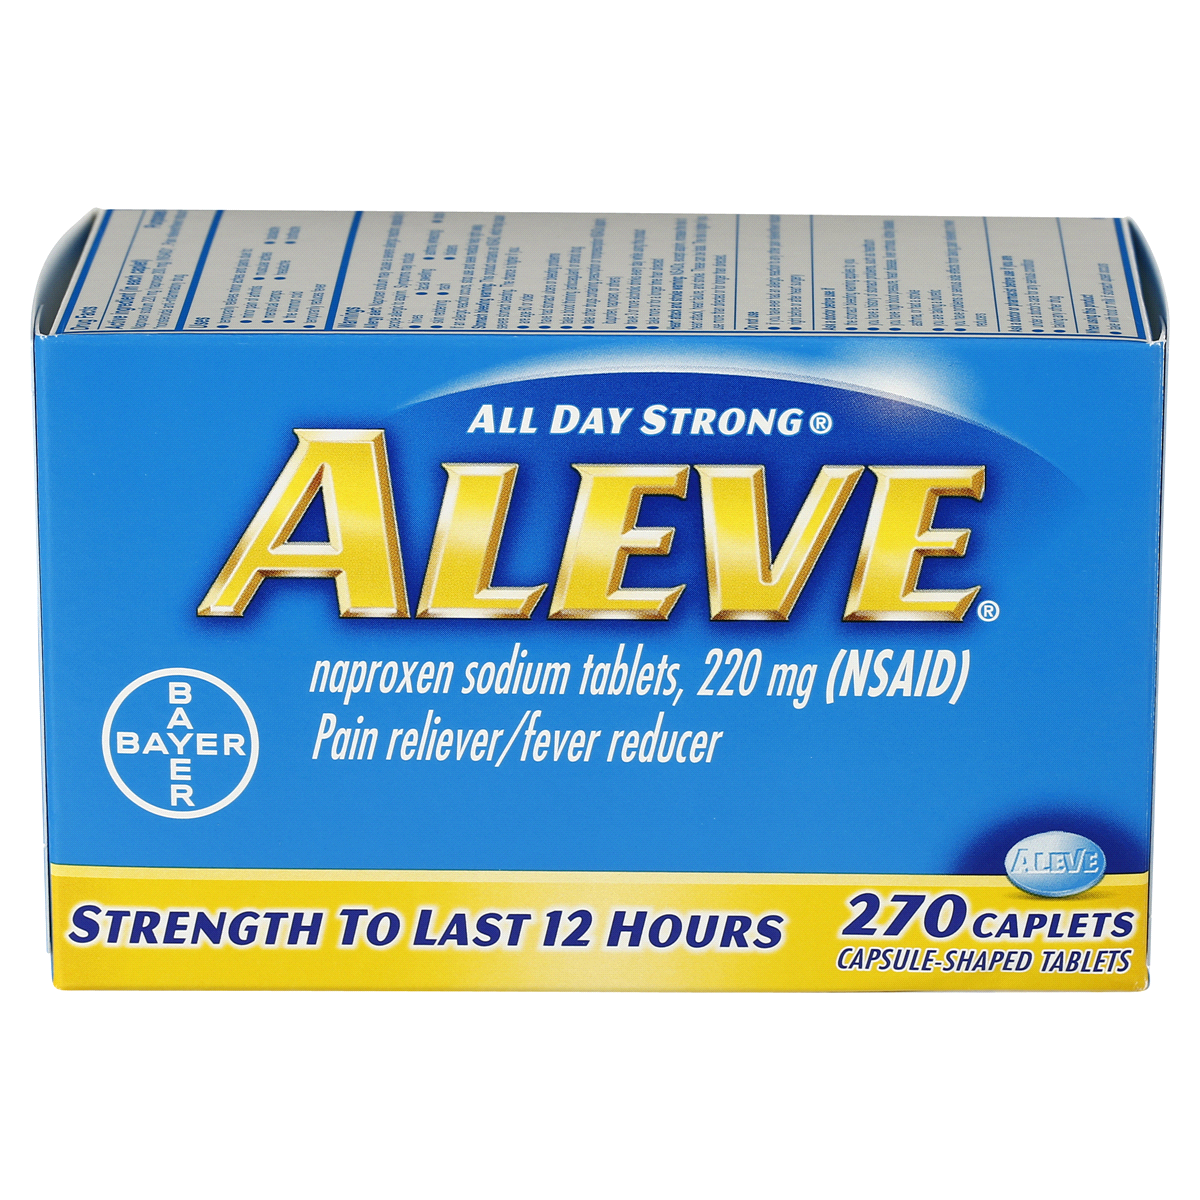 How Long Does It Take For Aleve (Naproxen) to Work